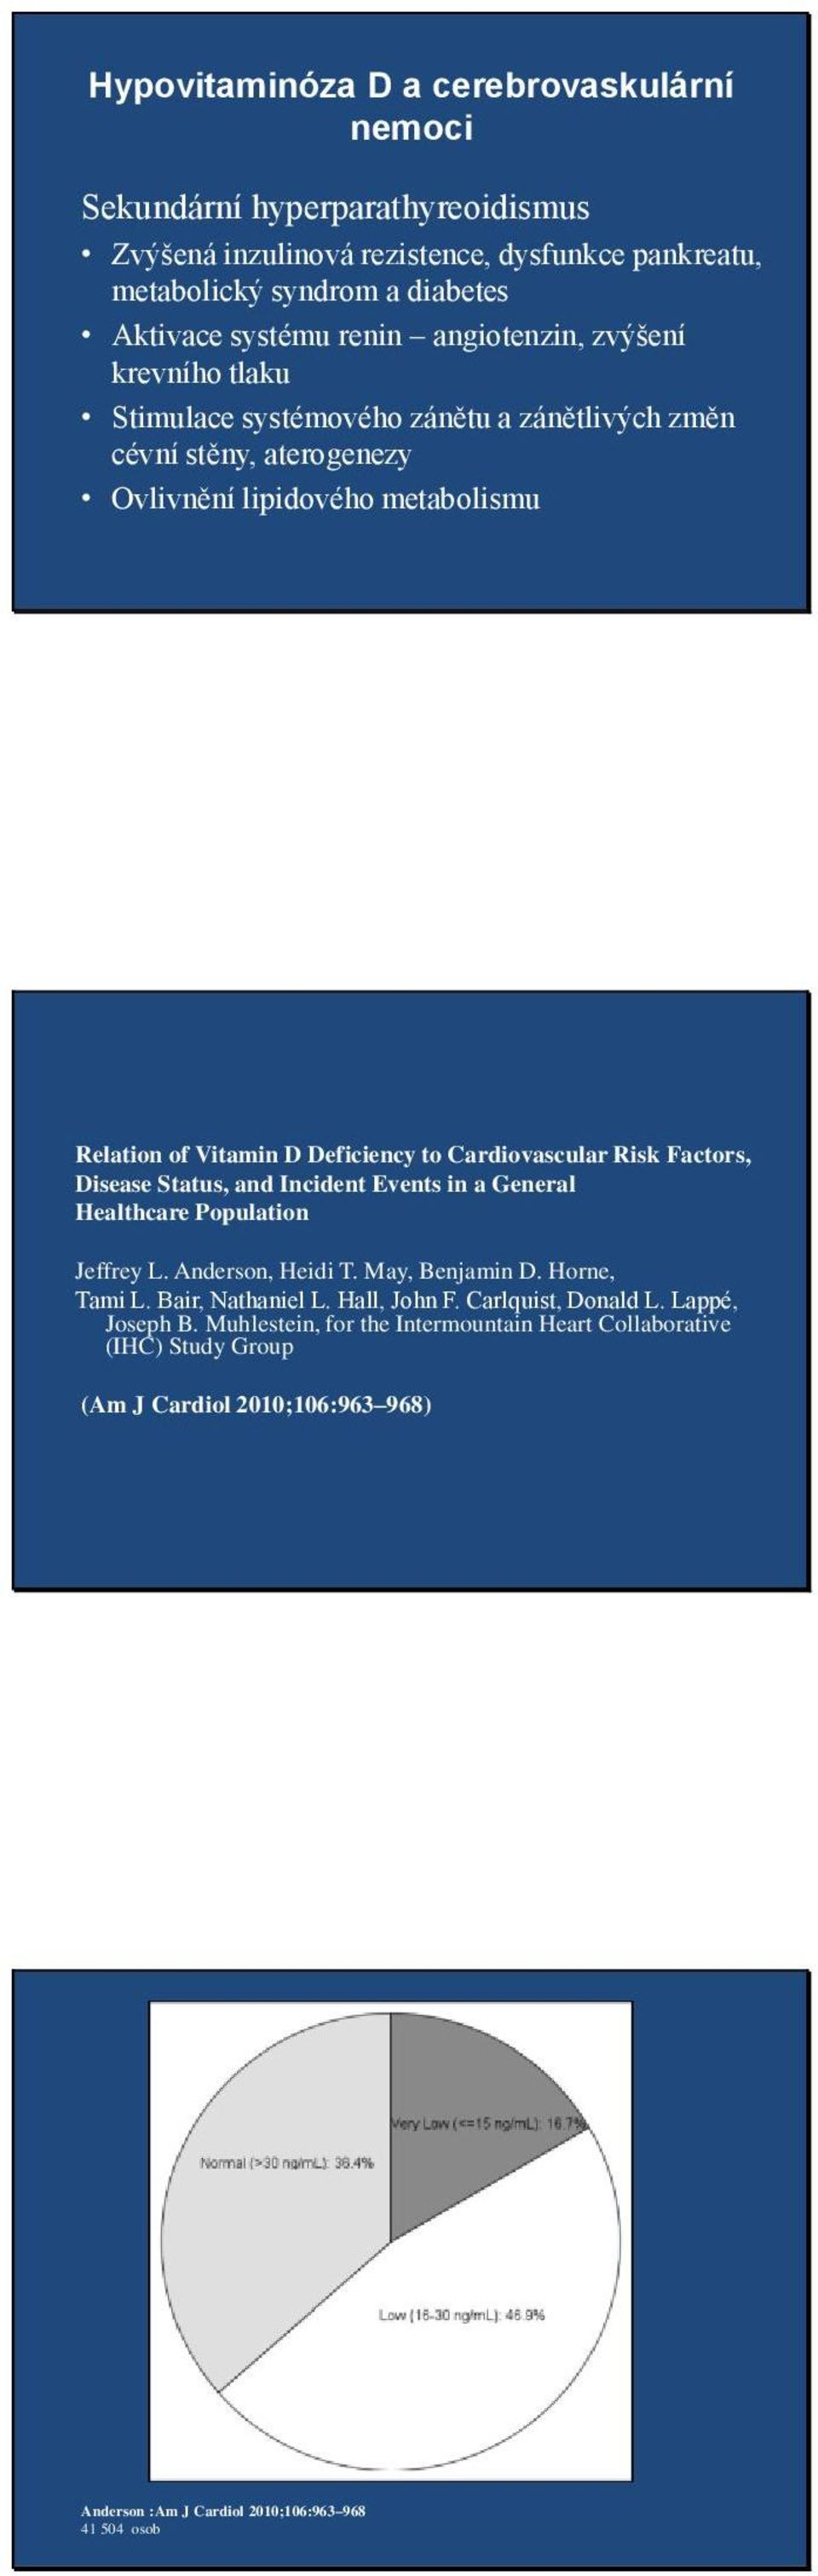 Cardiovascular Risk Factors, Disease Status, and Incident Events in a General Healthcare Population Jeffrey L. Anderson, Heidi T. May, Benjamin D. Horne, Tami L. Bair, Nathaniel L.